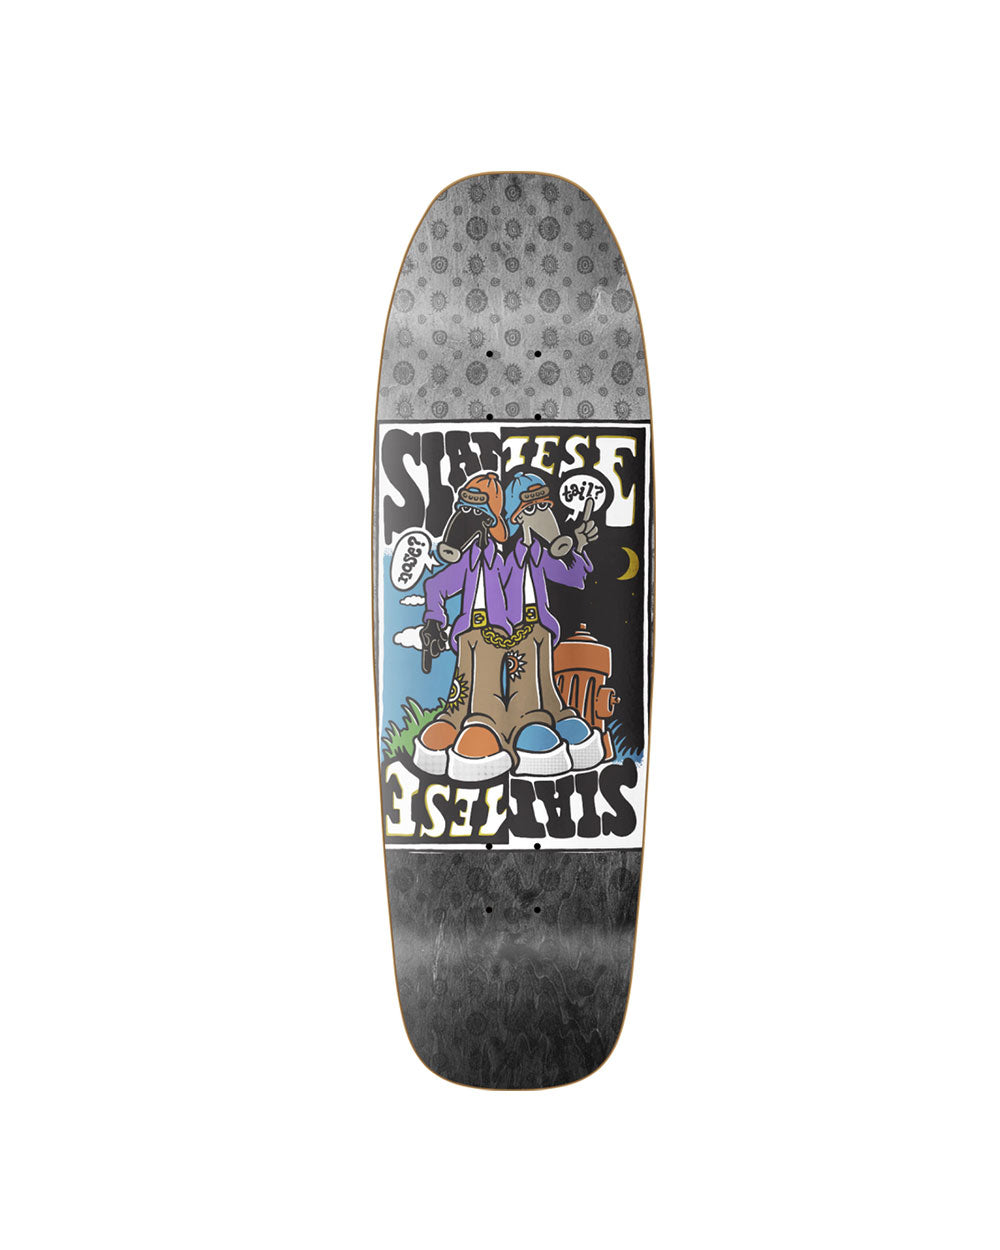 New Deal Siamese Doublekick Metallic Skateboard Deck - Threadbox